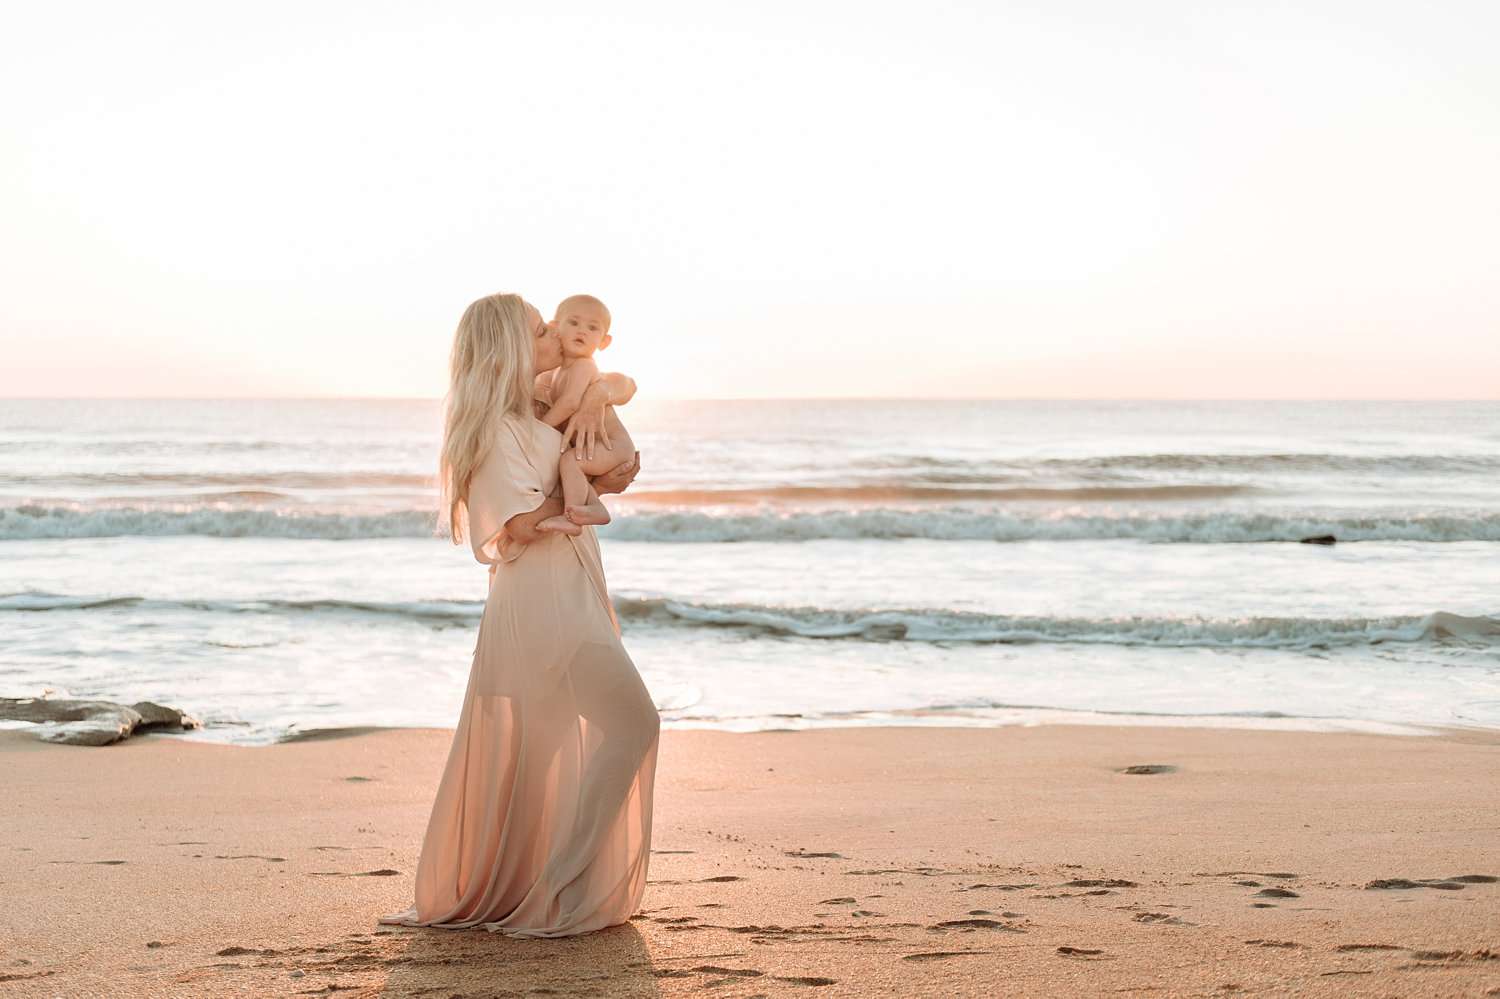 beautiful blonde mom holding baby boy on a beach, Florida, Rya Duncklee